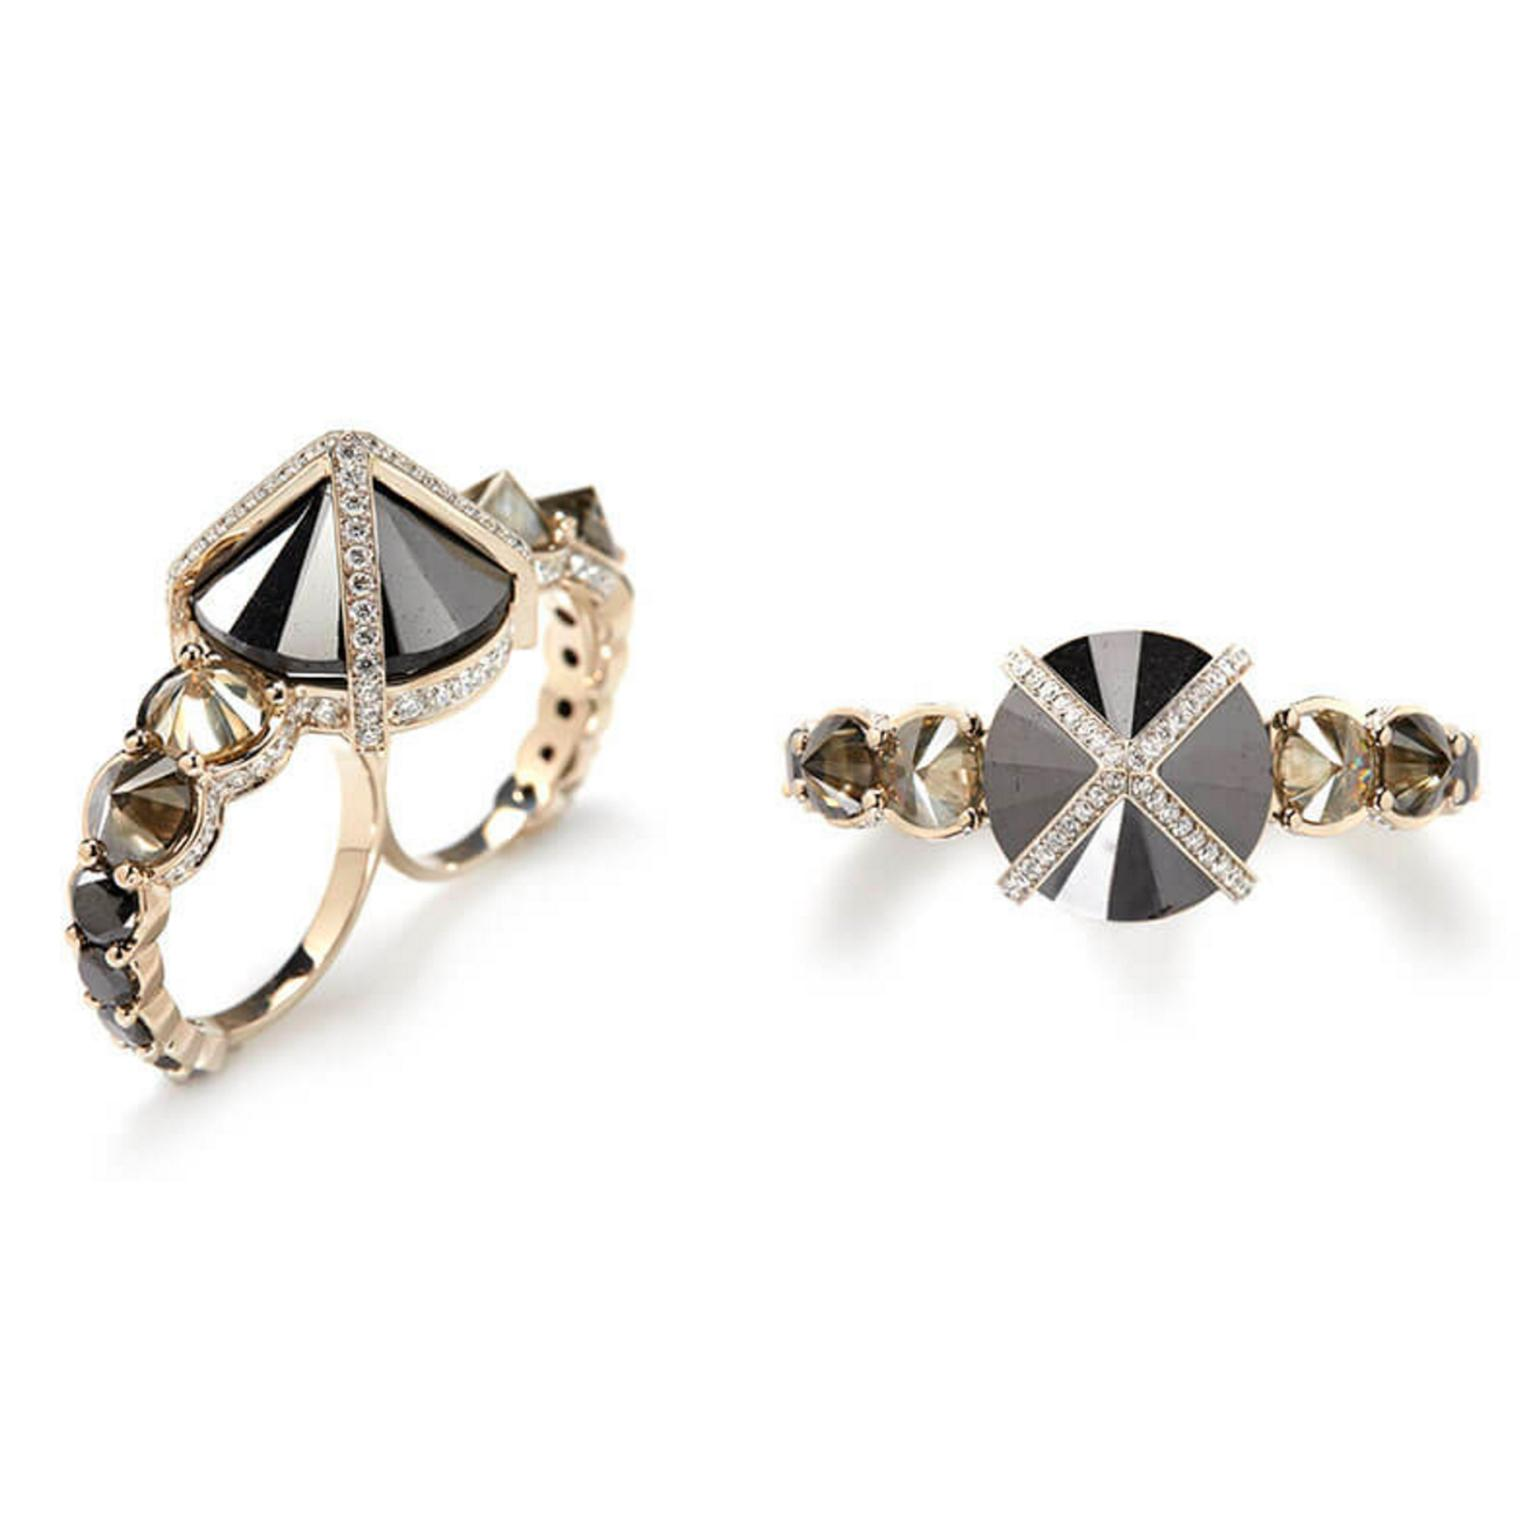 Ara Vartanian double-finger ring with inverted diamonds